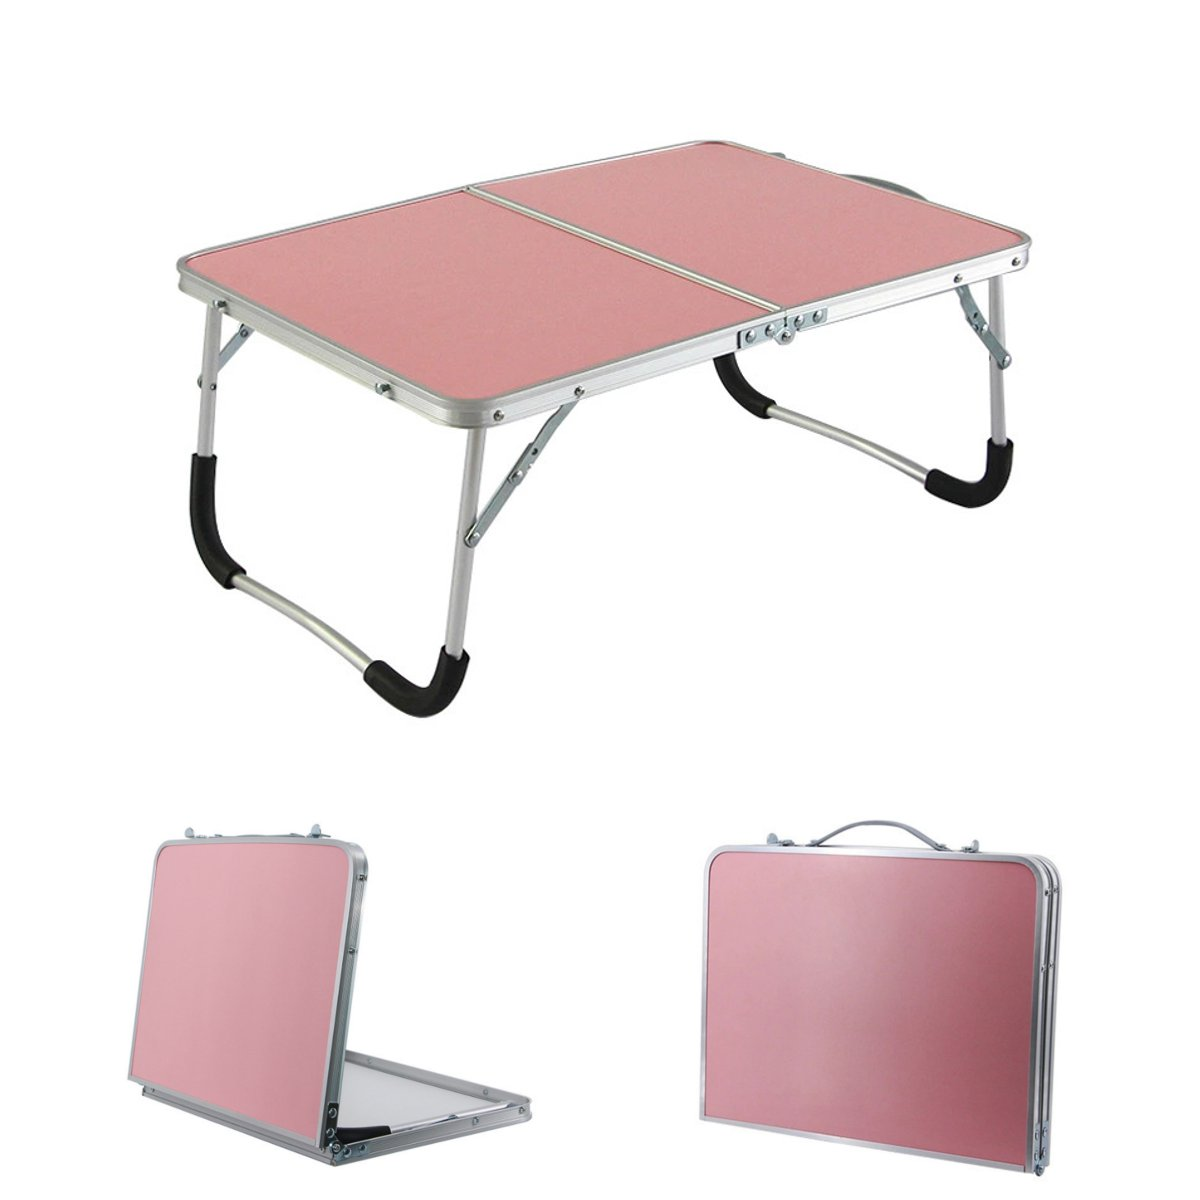 Portable Folding Aluminum Alloy Laptop Table Sofa Bed Office Laptop Stand Desk Computer Notebook Student Bedroom Table 3 Color